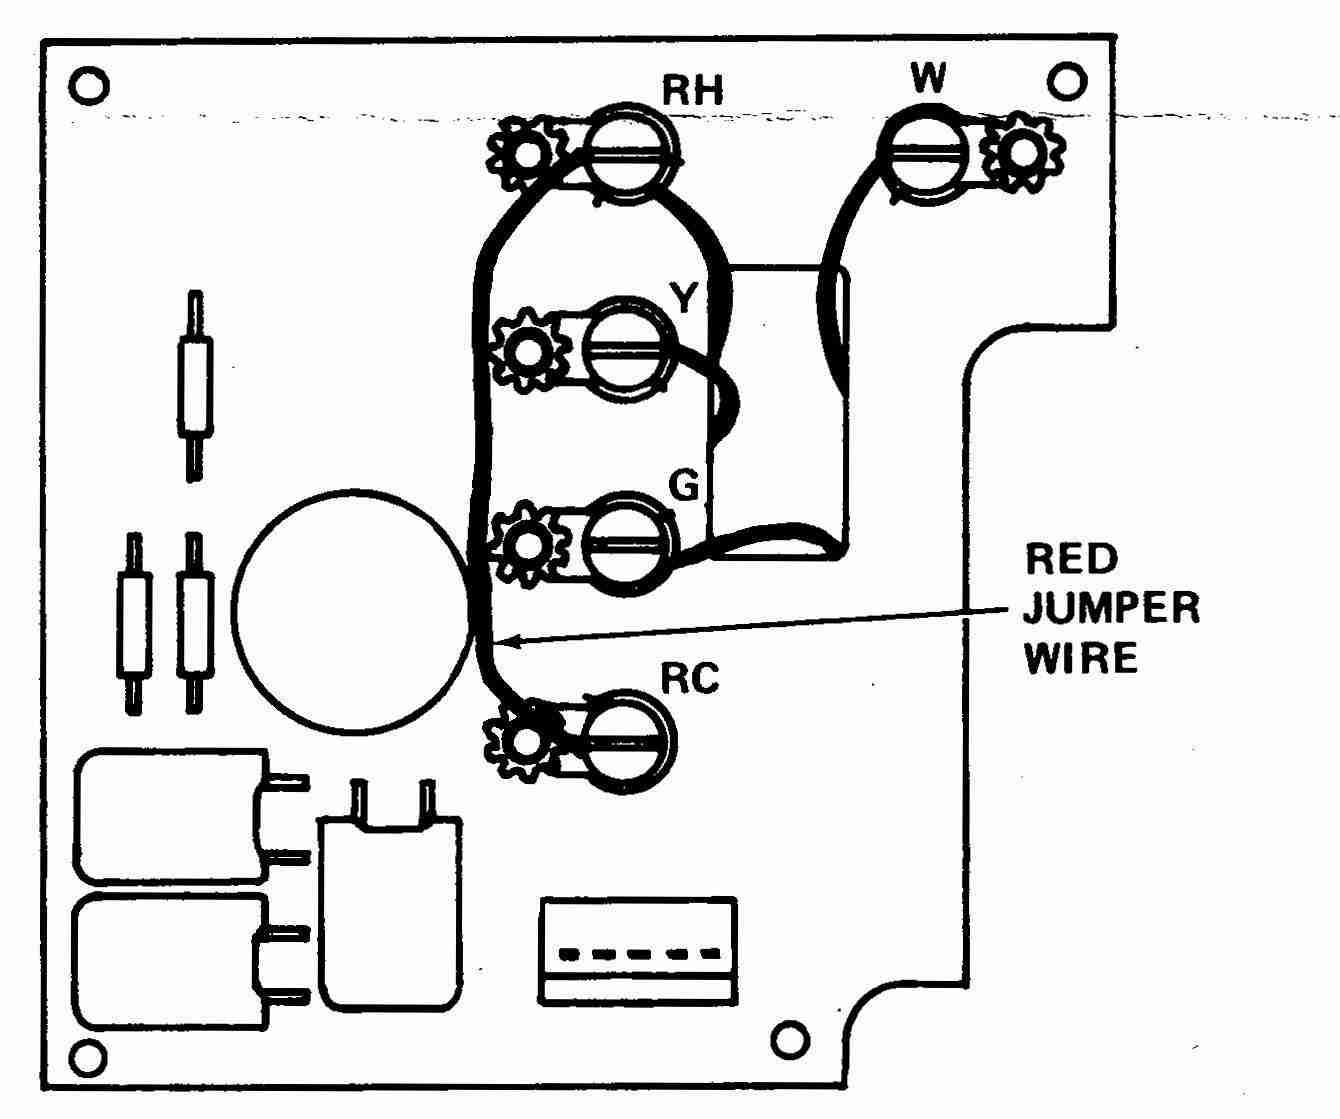 4 wire thermostat wiring heater wiring diagrams hubs Camco Thermostat Wiring Diagram how wire a white rodgers room thermostat, white rodgers thermostat thermostat wiring schematic 4 wire thermostat wiring heater